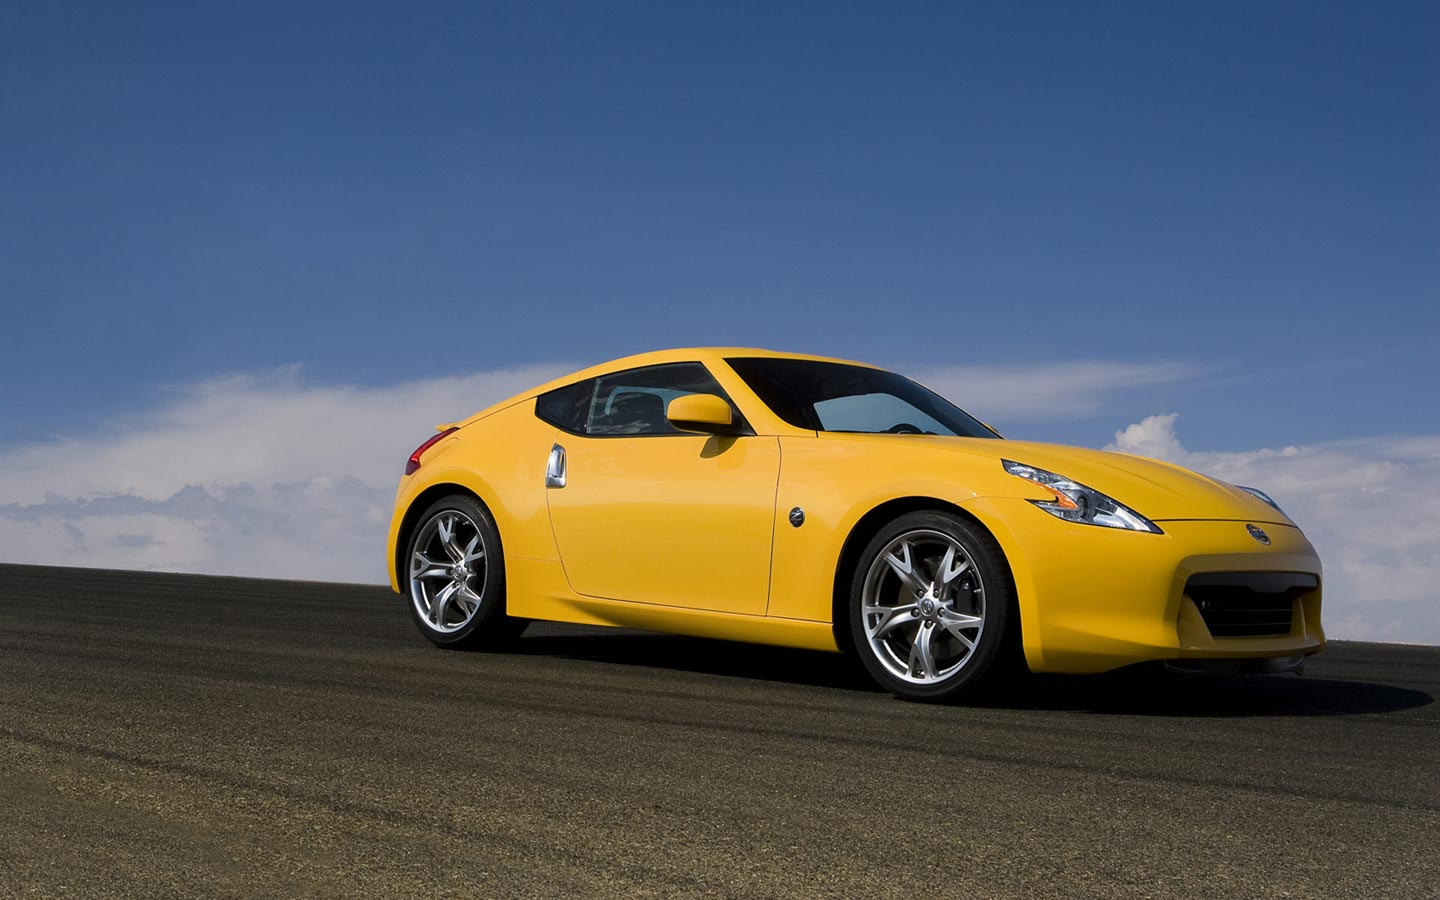 Wallpaper Nissan 370Z CCUS 1440x900